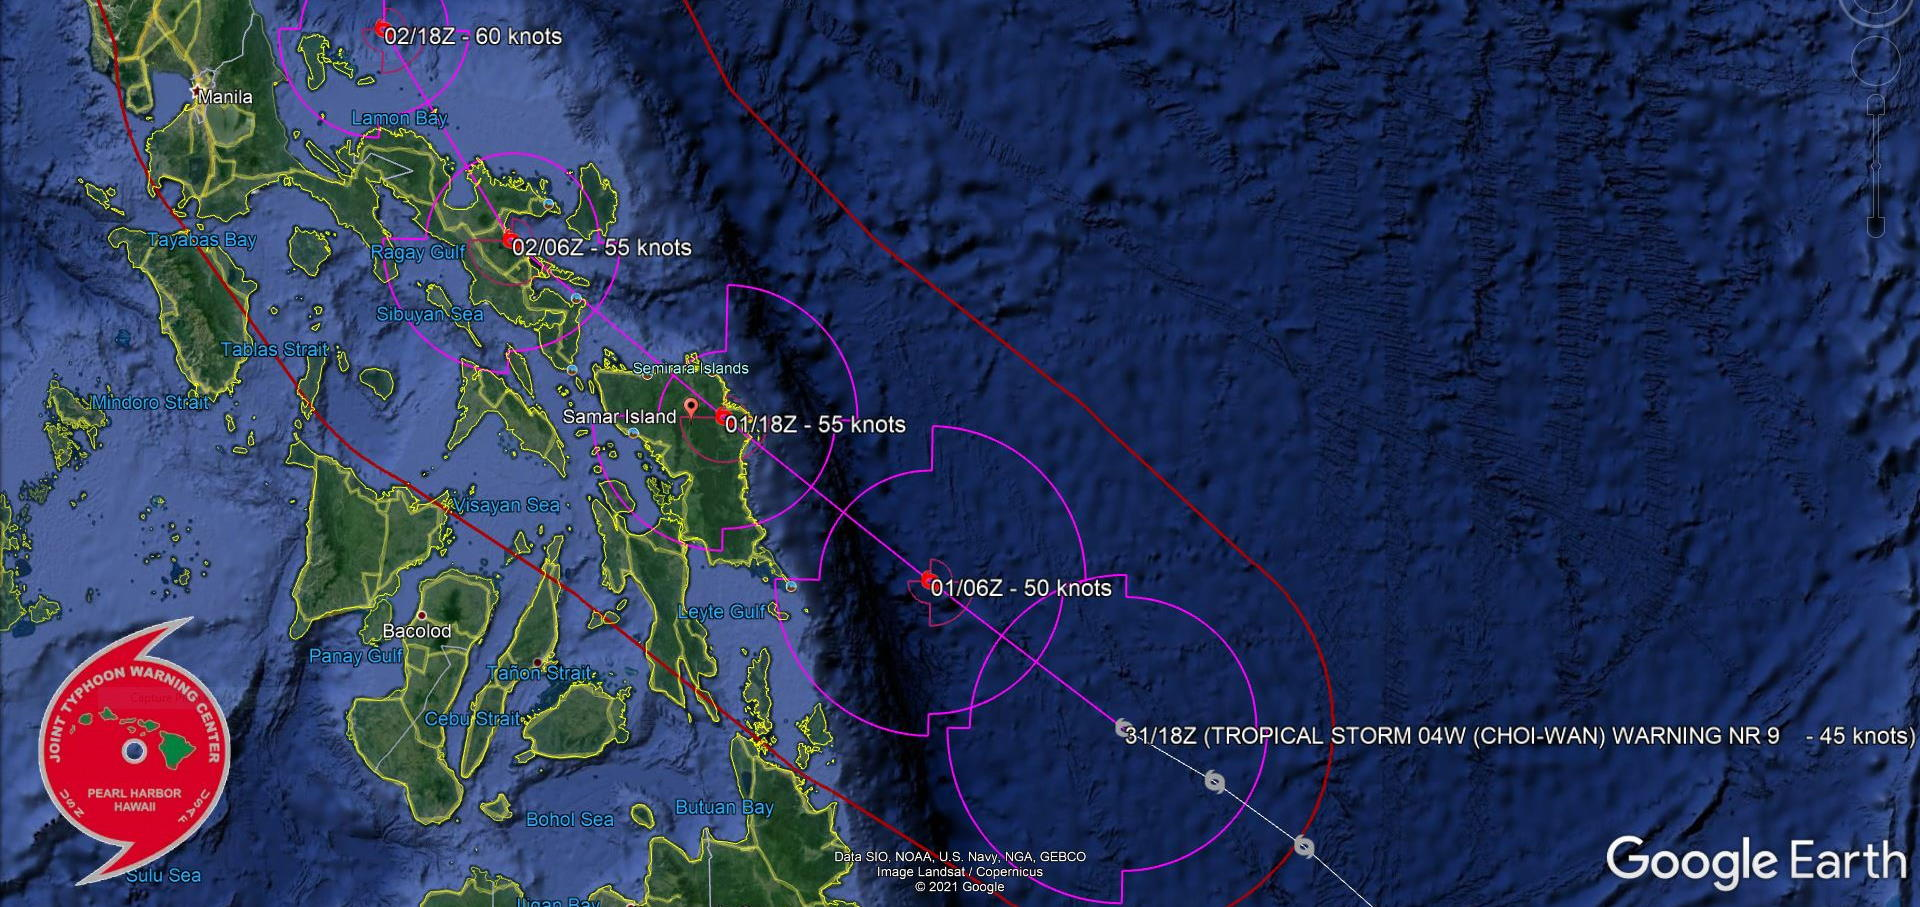 TS 04W. WARNING 9. FORECAST TO TRACK OVER EASTERN SAMAR IN APPRX 24H. MODERATE CONFIDENCE IN THE FORECAST.